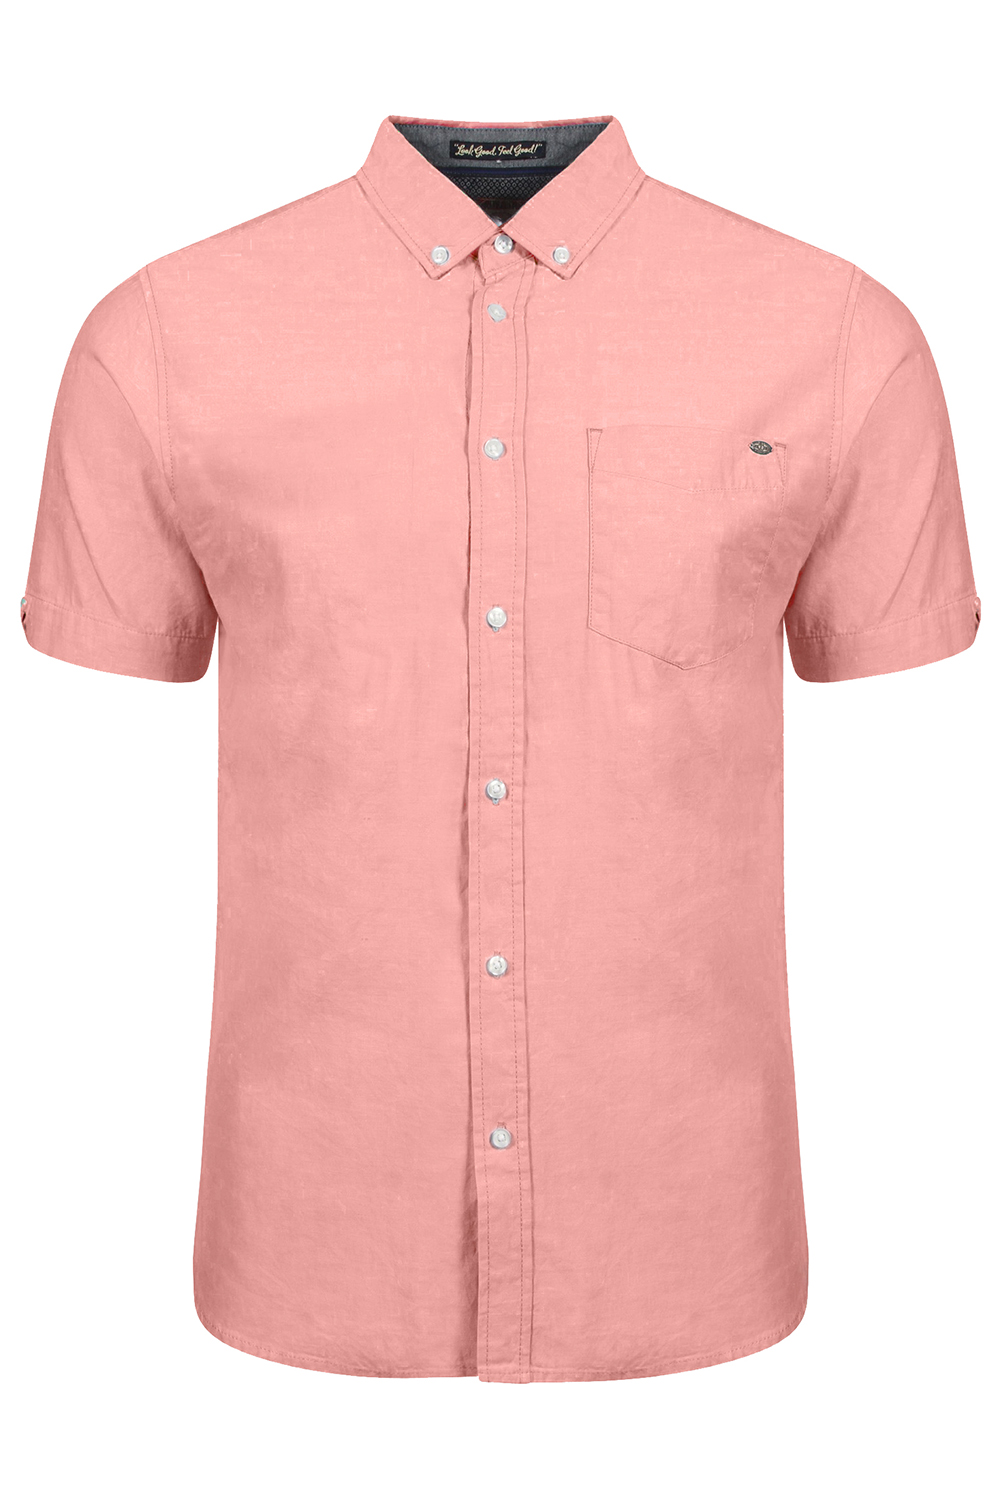 Tokyo-Laundry-Mens-Woodbury-Short-Sleeved-Smart-Casual-Shirt-Collared-Cotton-Top thumbnail 7